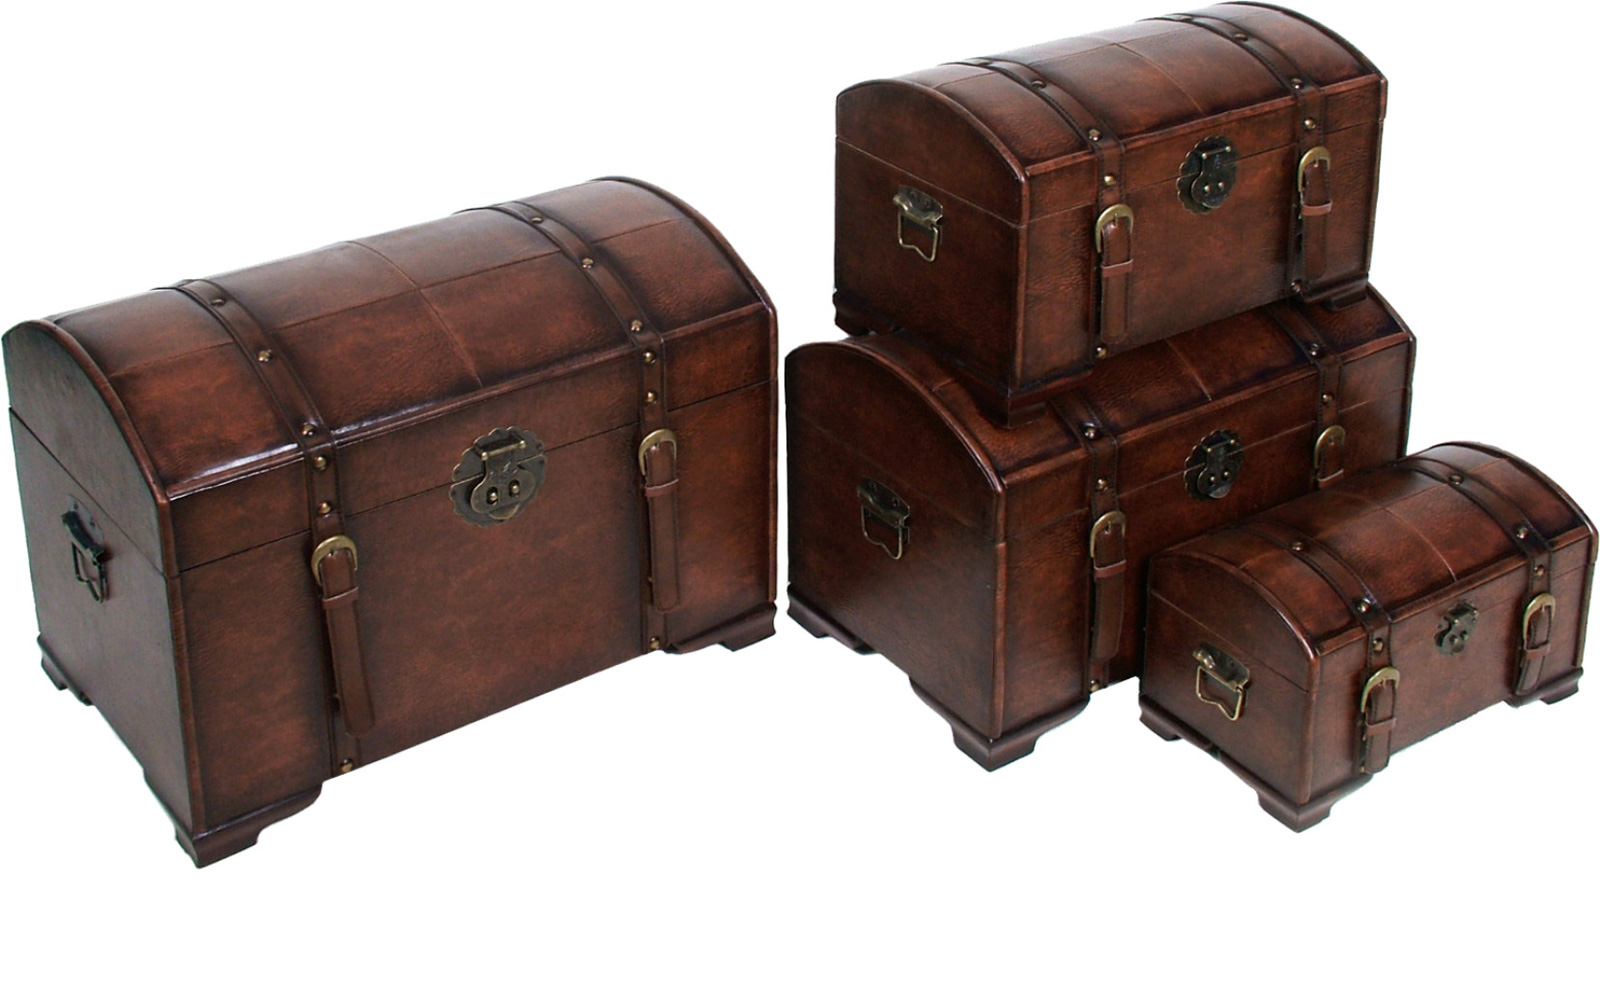 4 piece faux leather trunk set in storage trunks - Leather chests and trunks ...